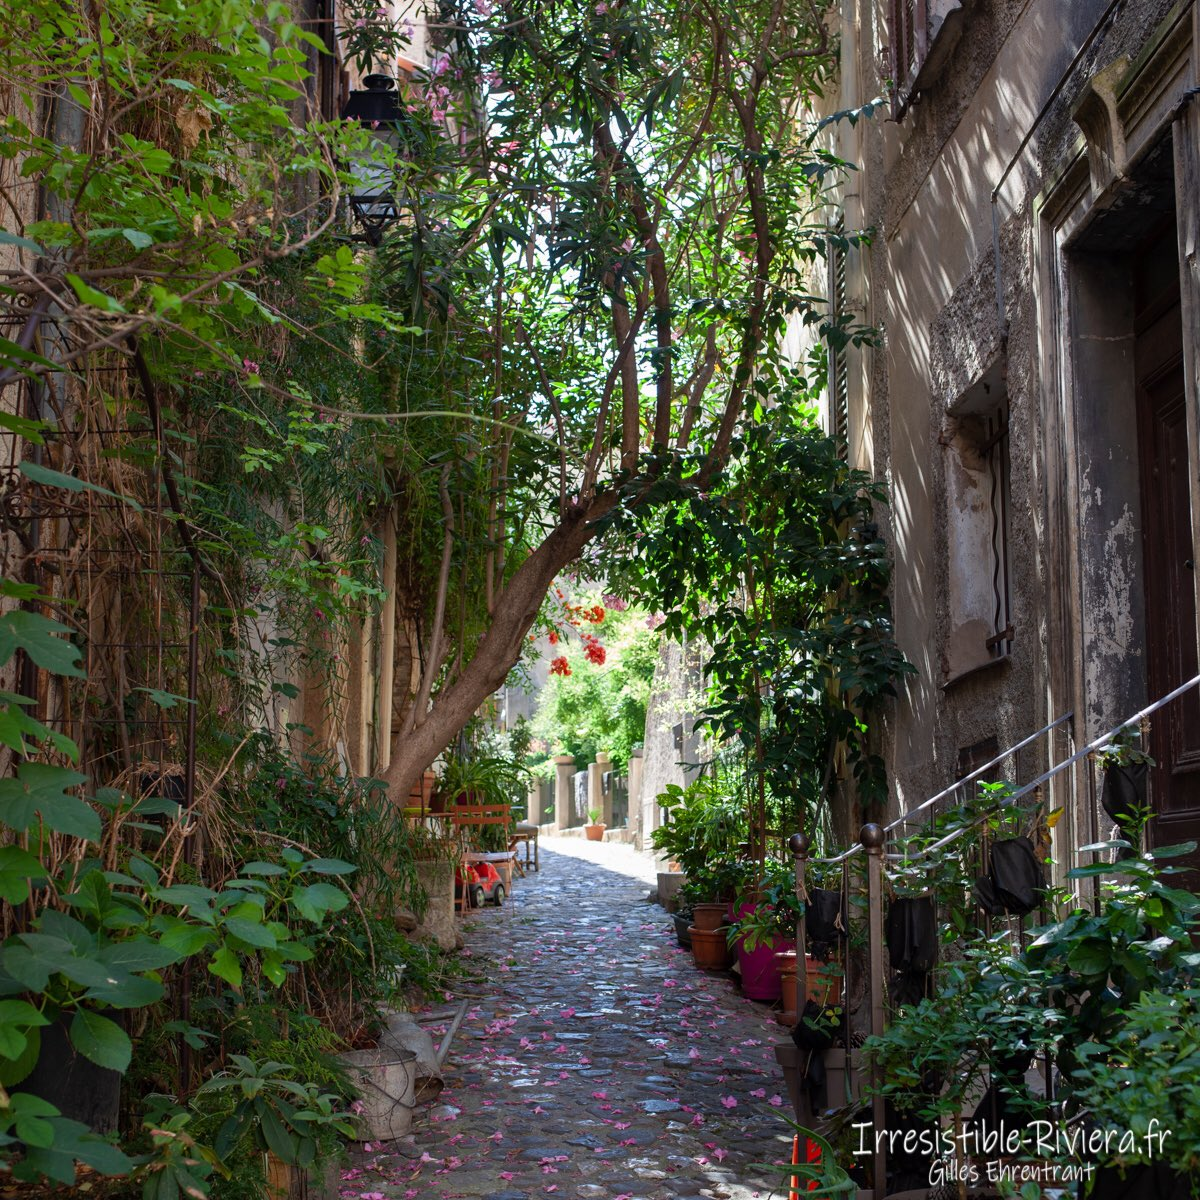 🇫🇷 #Climatisation naturelle de nos anciens : ruelle à l'ombre du #cagnard et de la #canicule avec un peu de végétation salvatrice. 🇬🇧Natural air conditioning of our #ancestors: shade and vegetation.   #CotedAzurFrance #FrenchRiviera #France #ExploreNiceCotedAzur #ecologie #clim